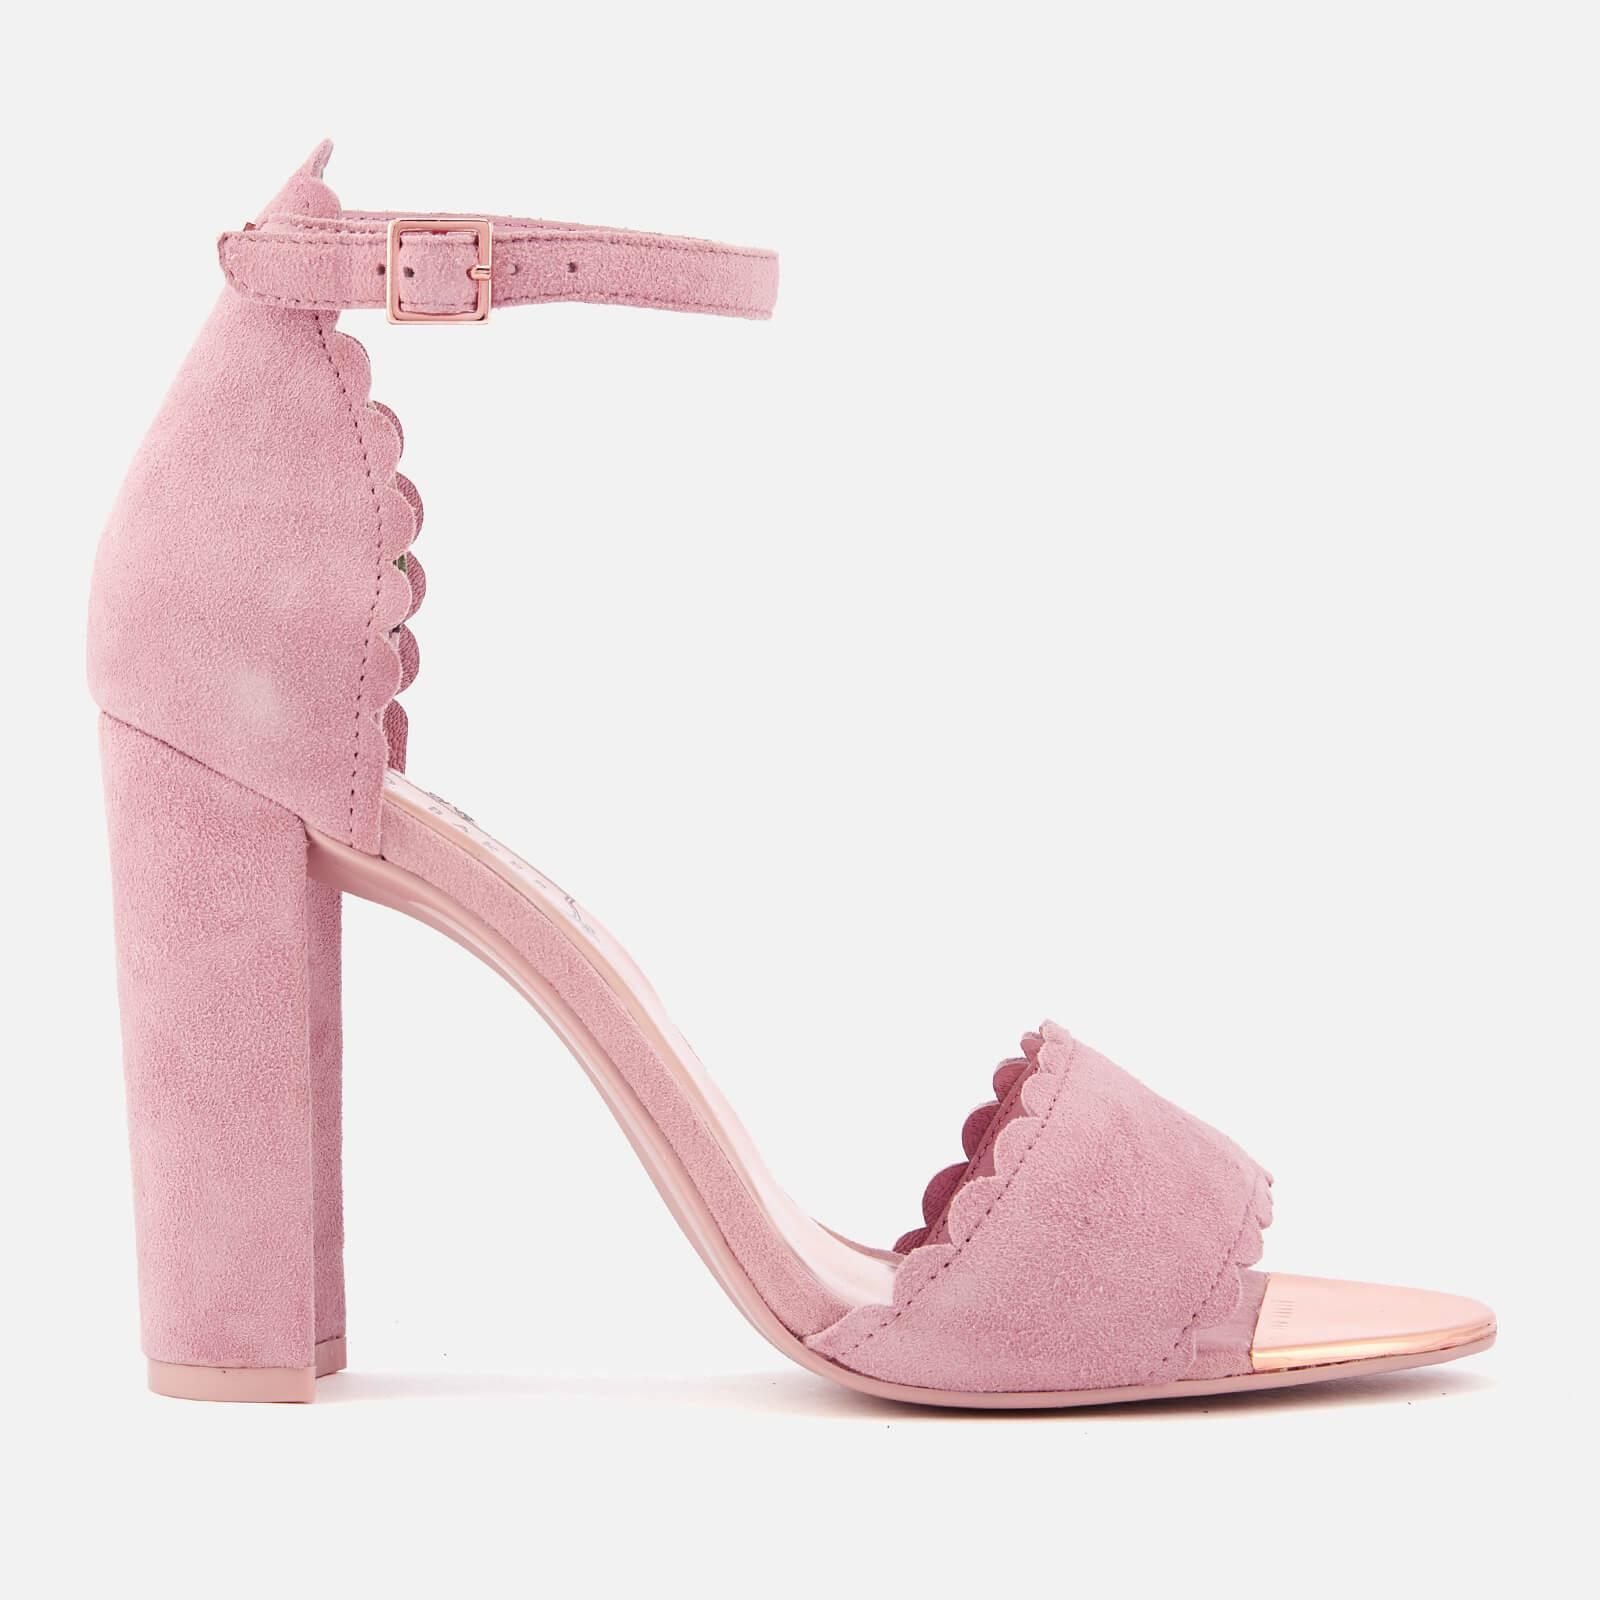 a3ed1ae2e0e60 Ted Baker Pink Raidha Suede Barely There Block Heeled Sandals